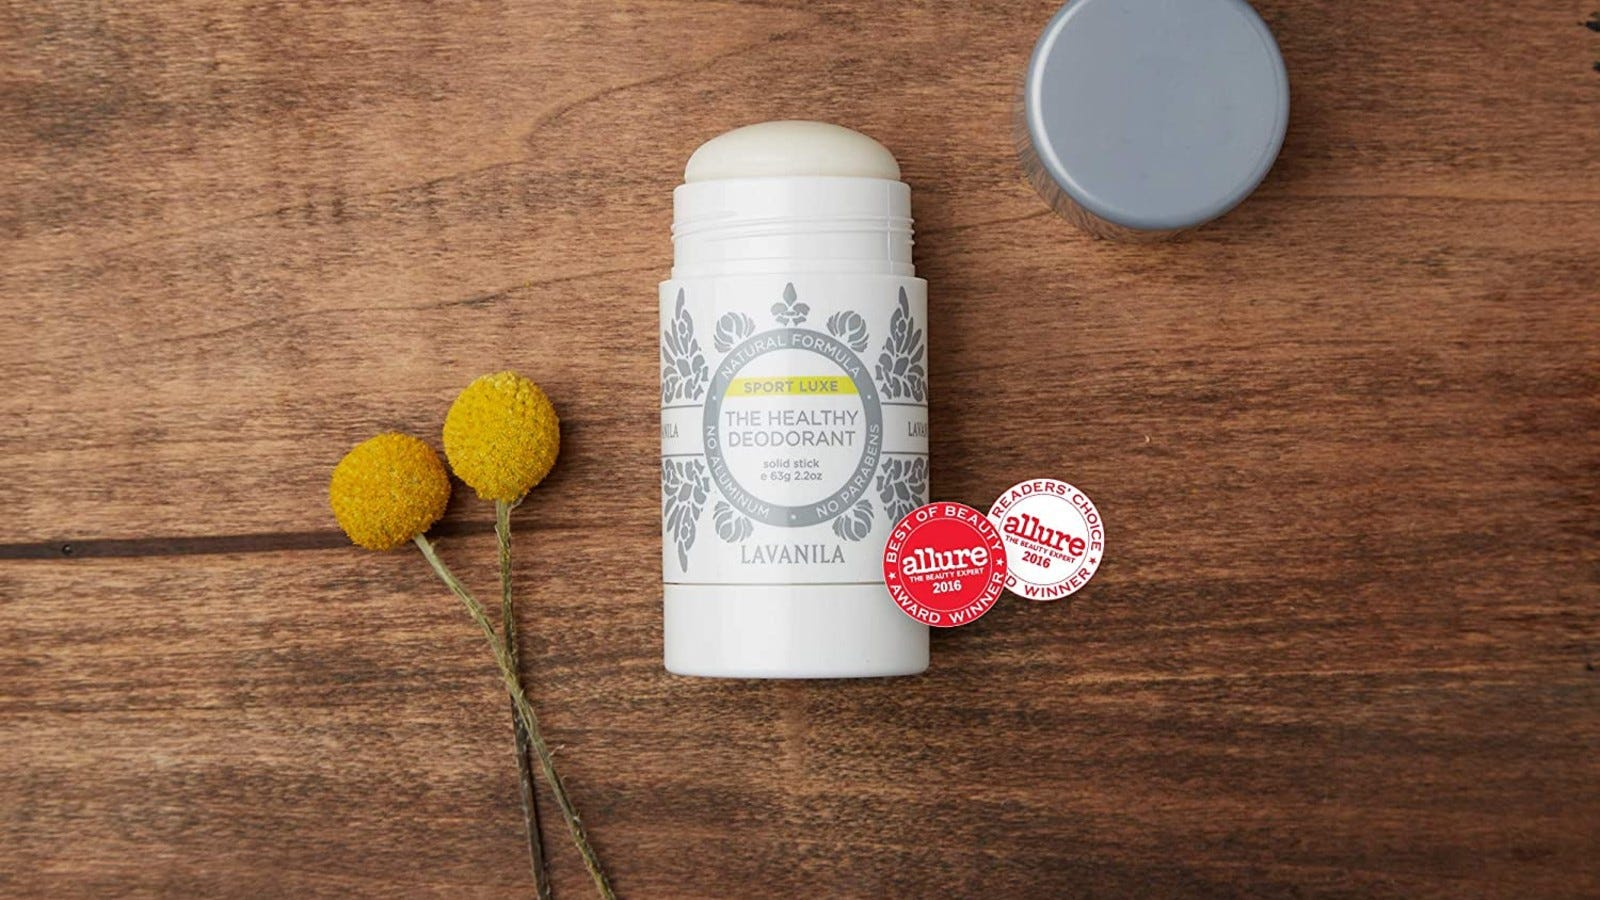 white Lavanila deodorant laying on a wood table with yellow flowers next to it